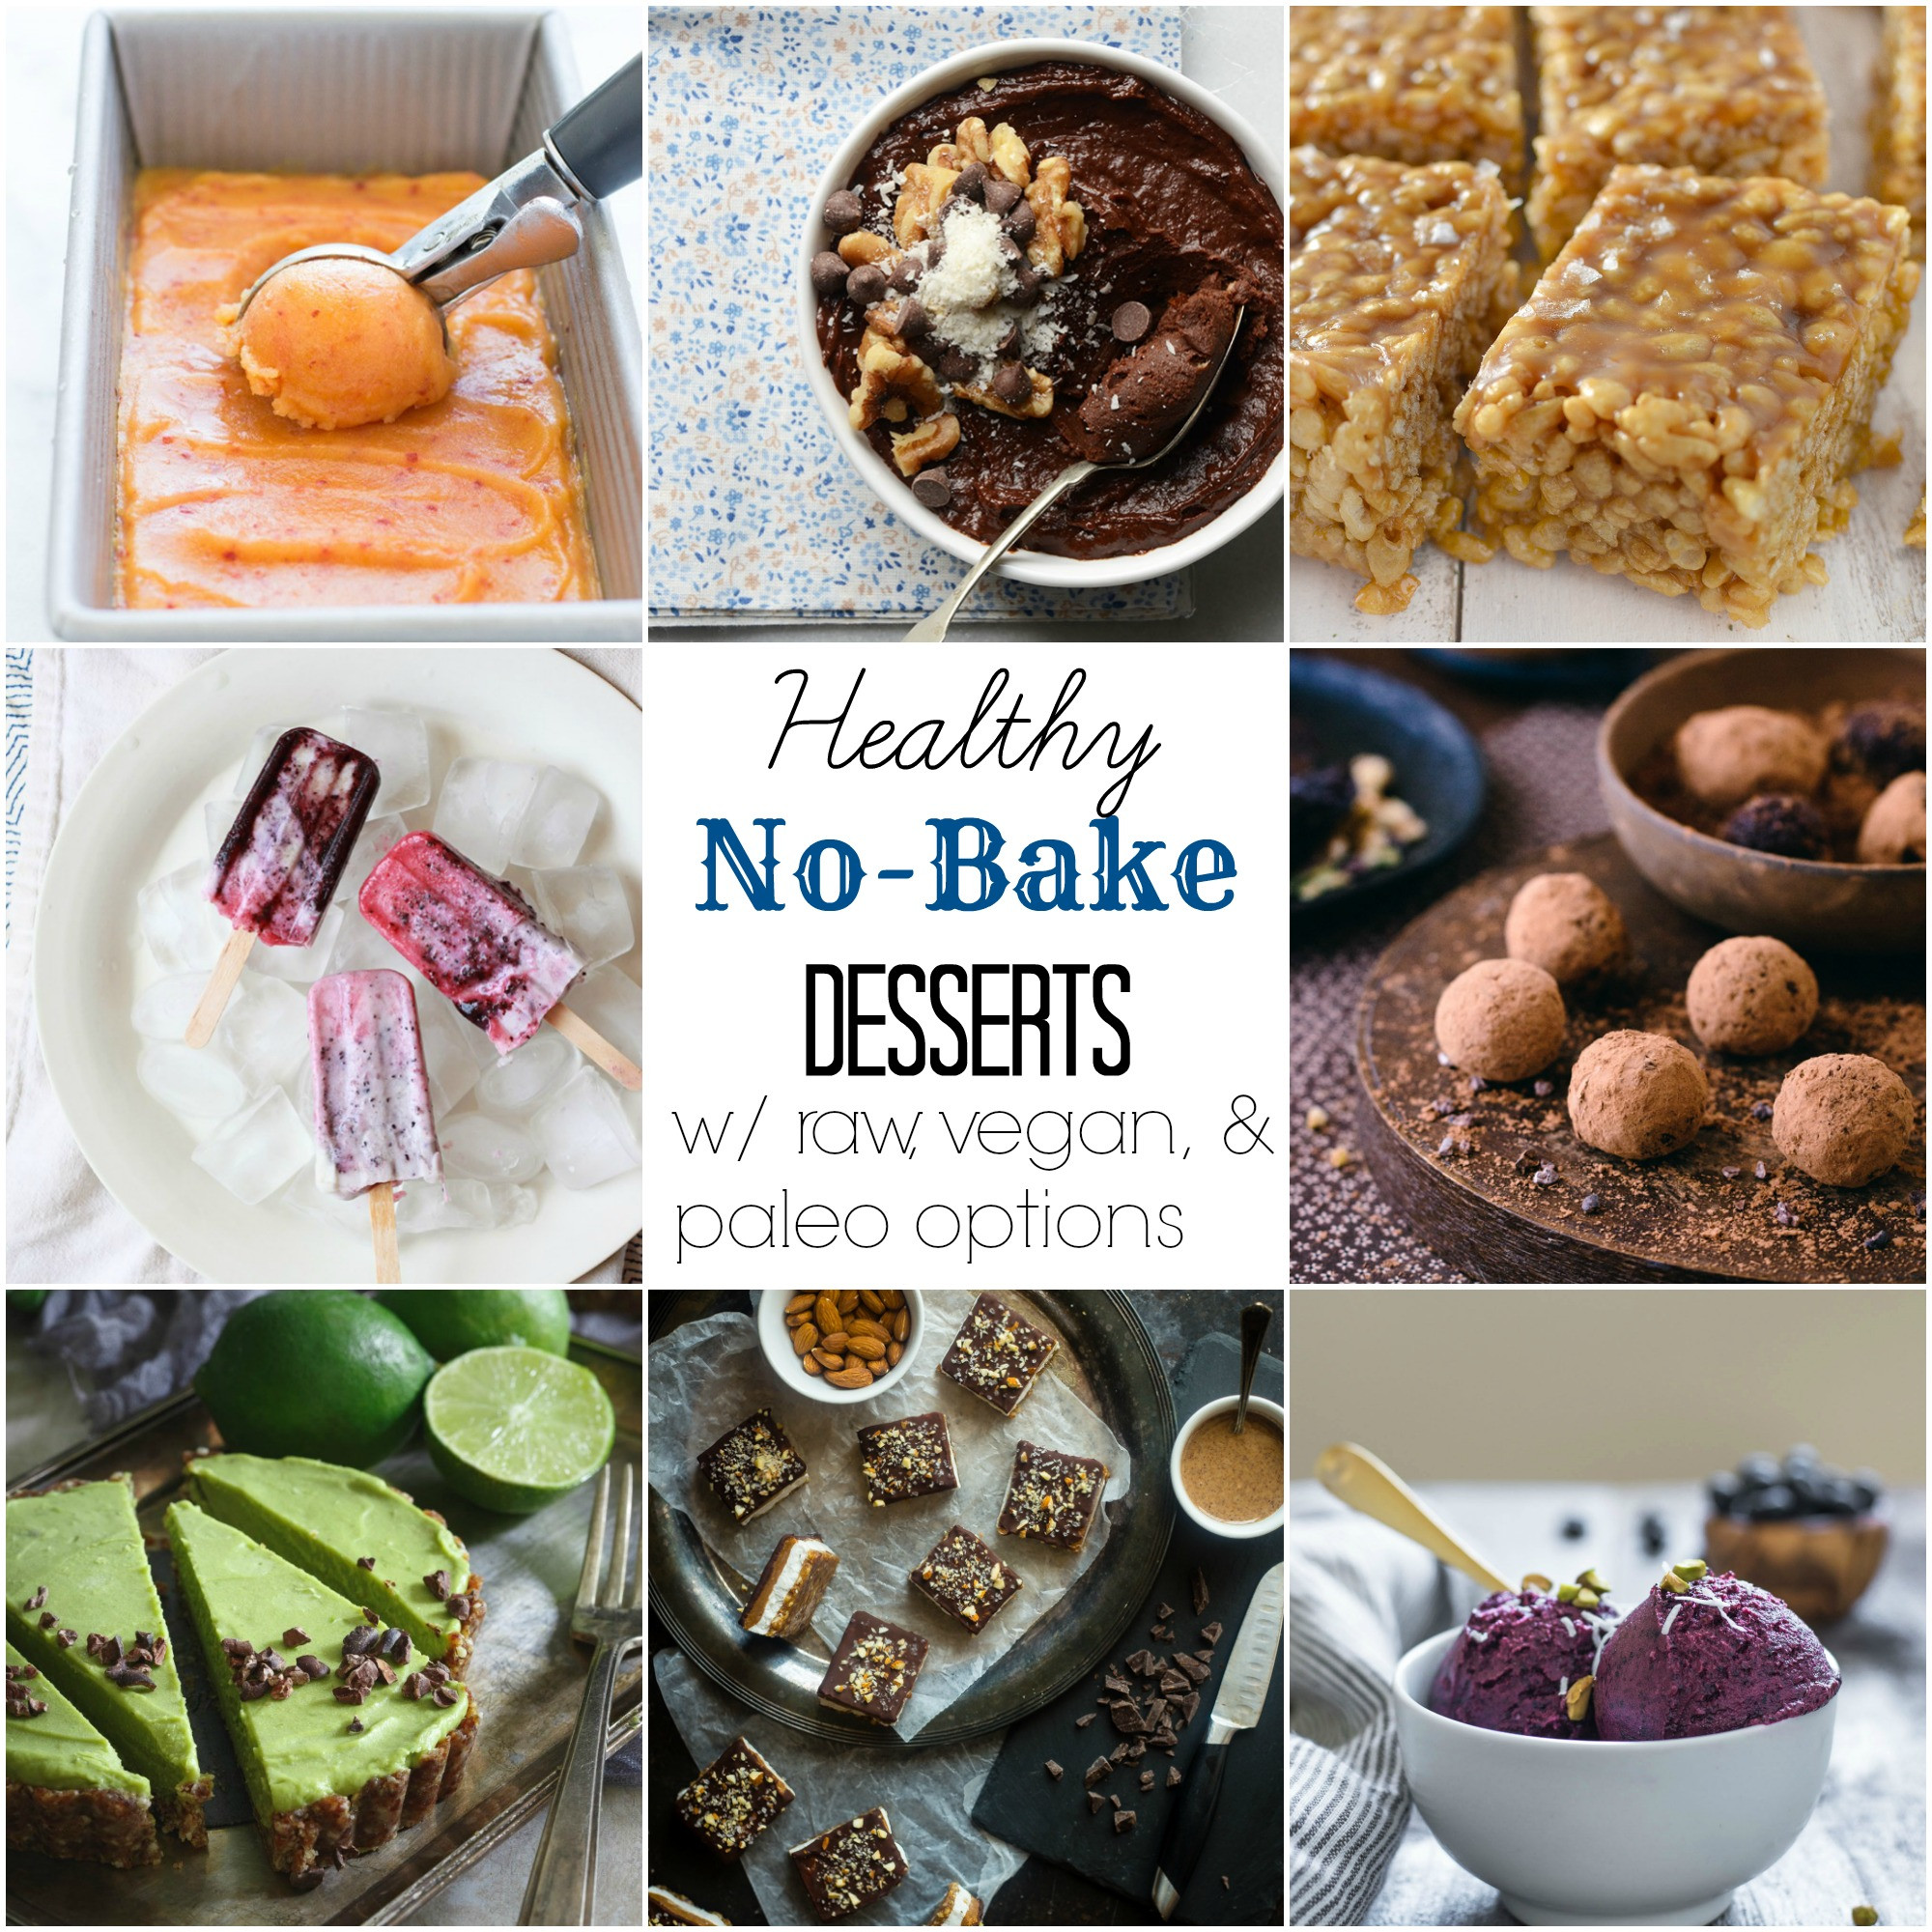 Healthy No Bake Desserts  53 Healthy No Bake Desserts With Vegan and Paleo Options